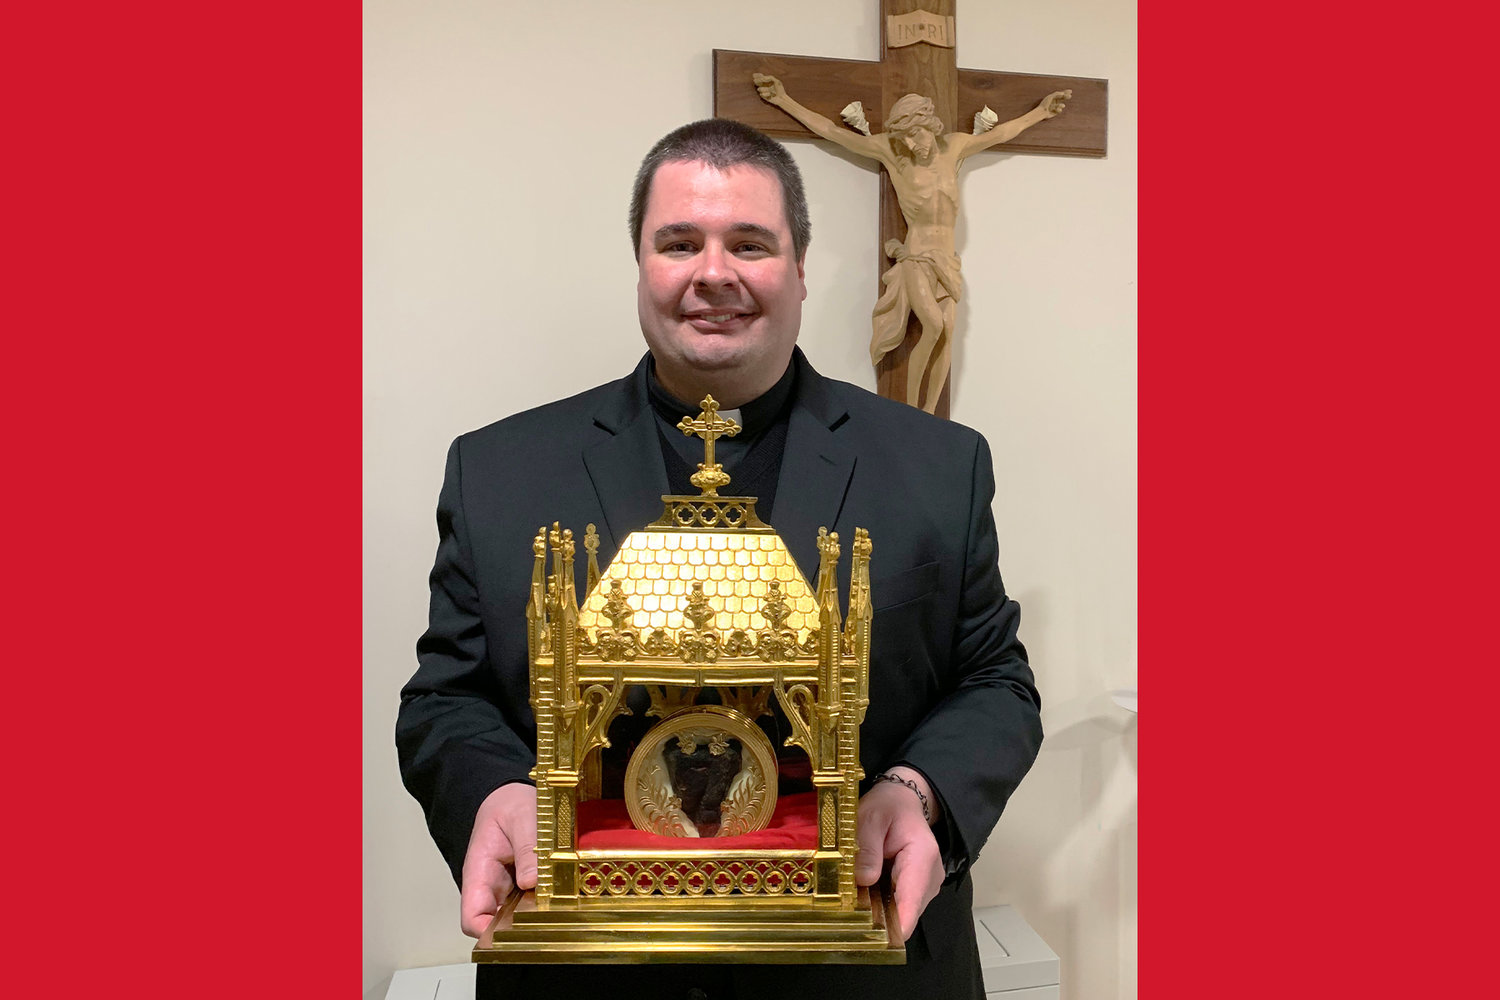 Father Christopher Aubuchon holds a reliquary containing the incorrupt heart of St. John Vianney, patron saint of parish priests, during a diocesan day of prayer for vocations in 2019.